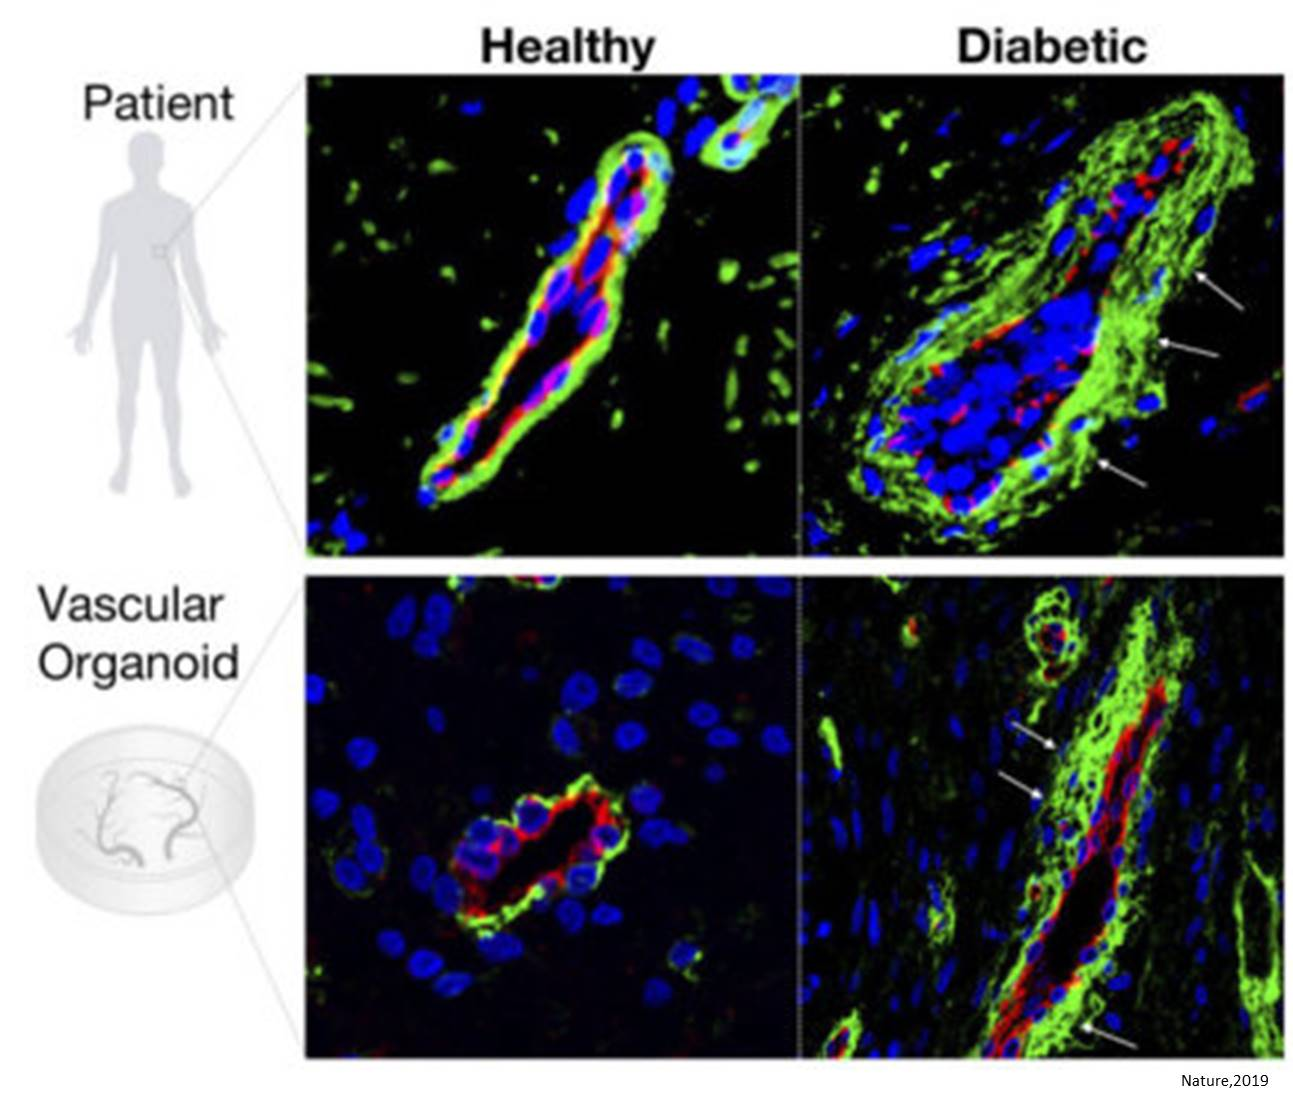 Human blood vessel organoids as a model of diabetic vasculopathy